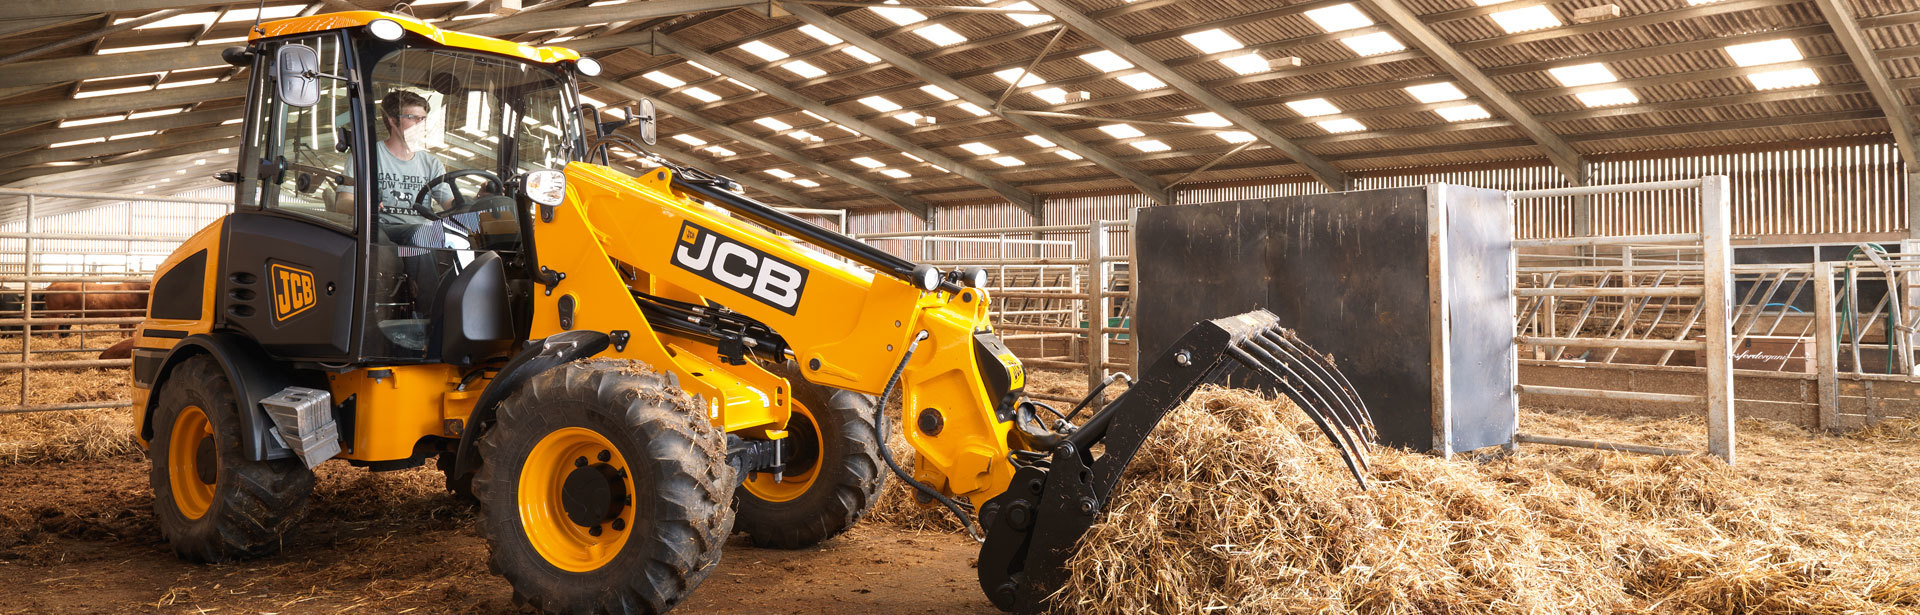 banner-jcb-telescopic-wheel-loader4.jpg